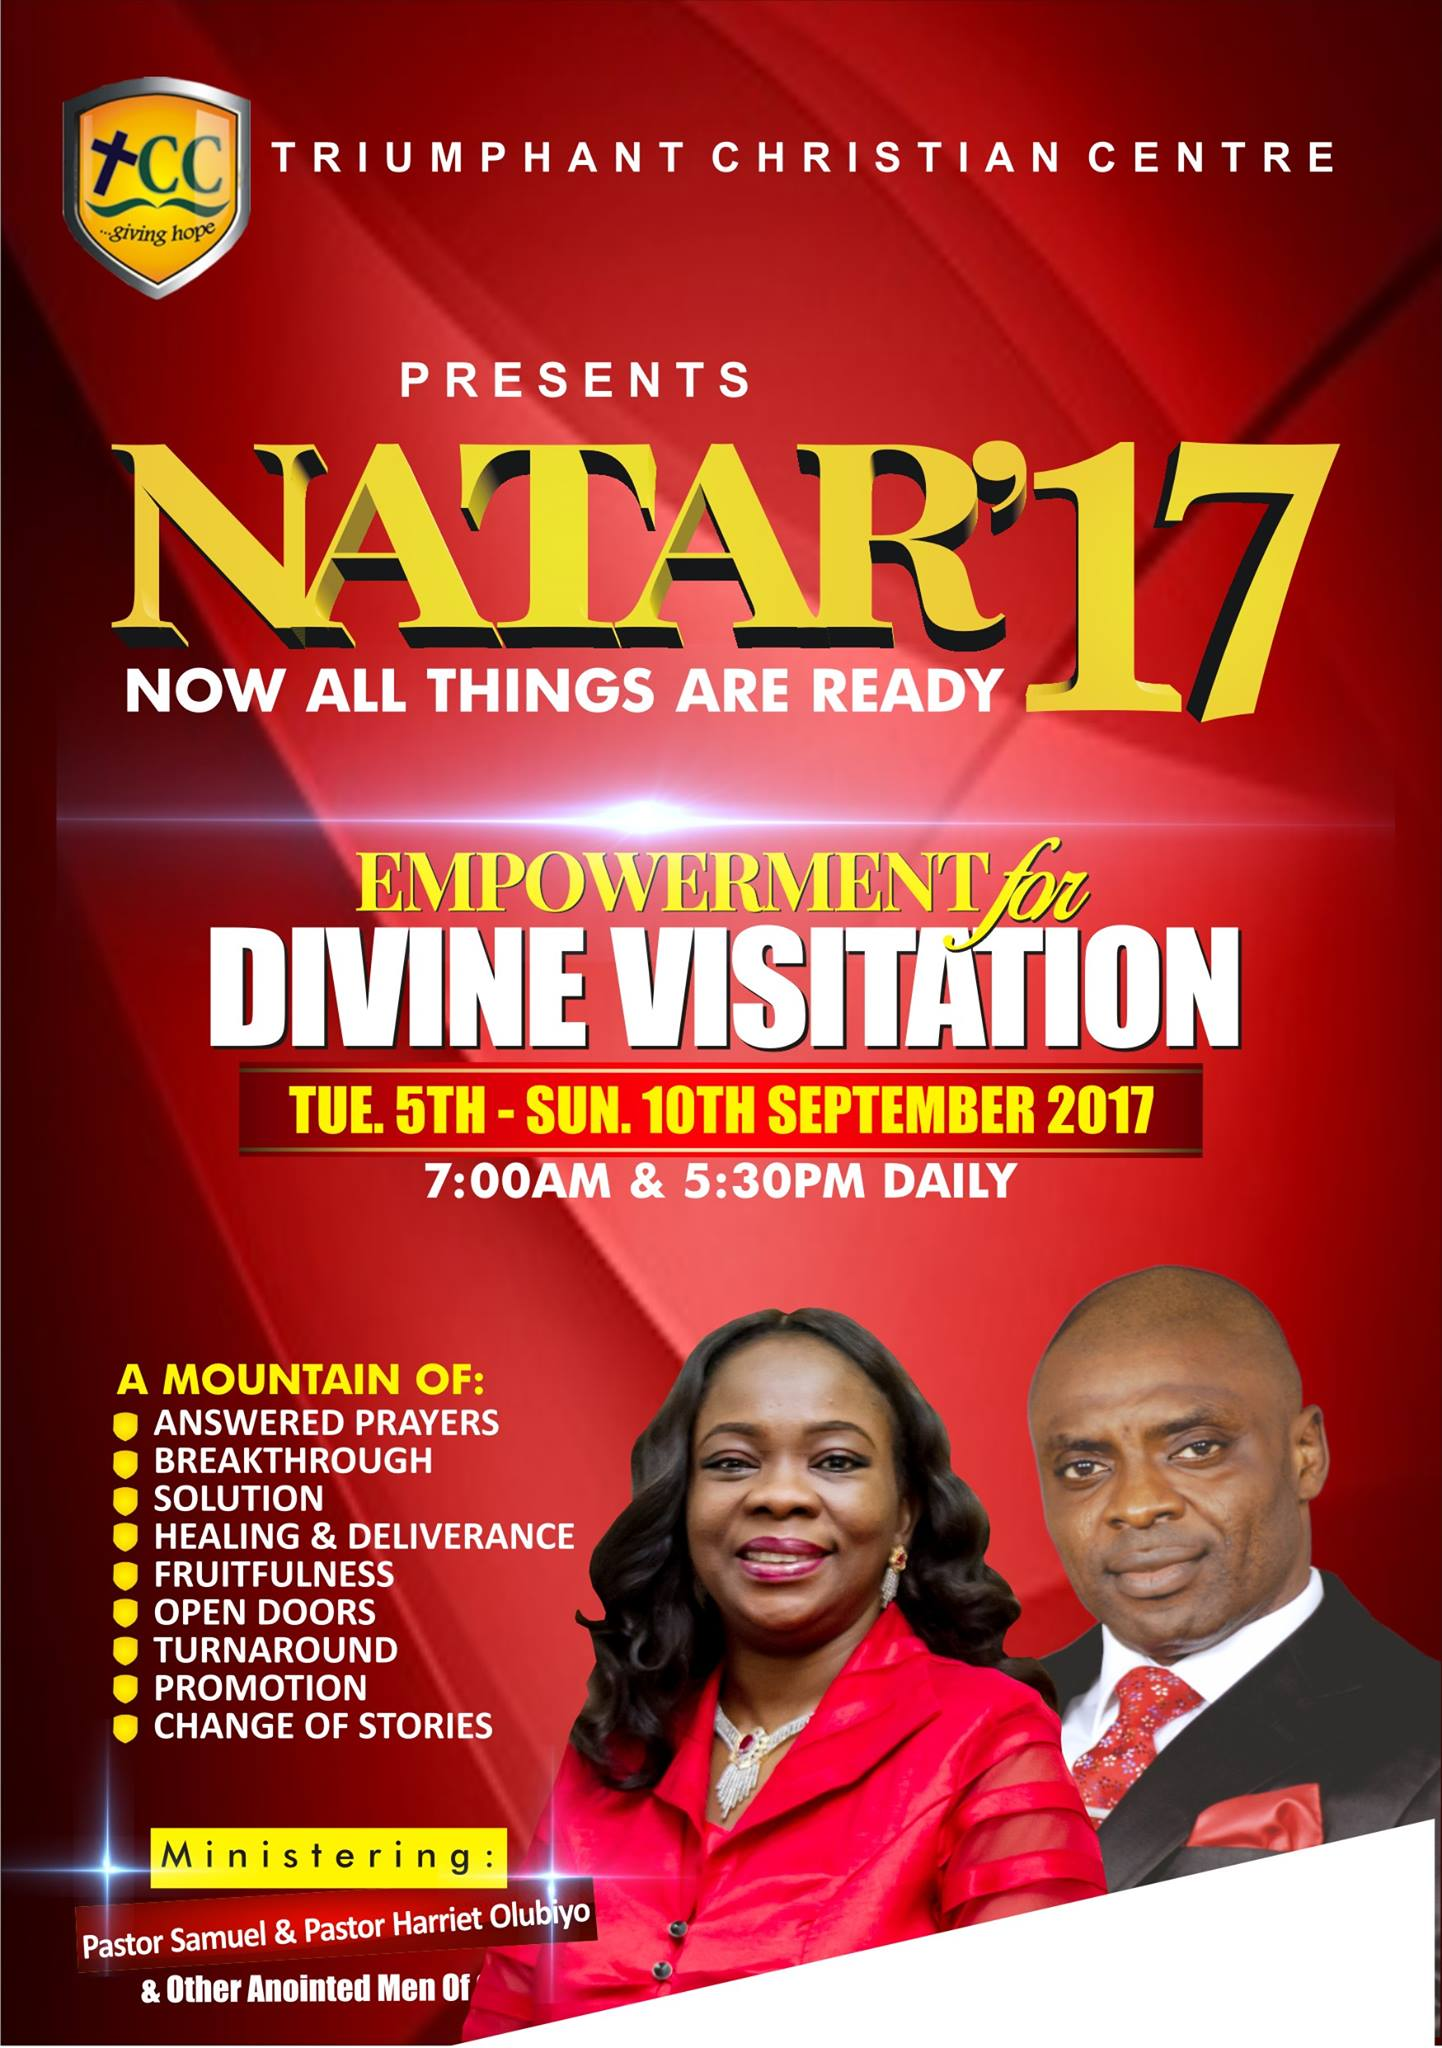 NATAR 17 - Now All Things Are Ready